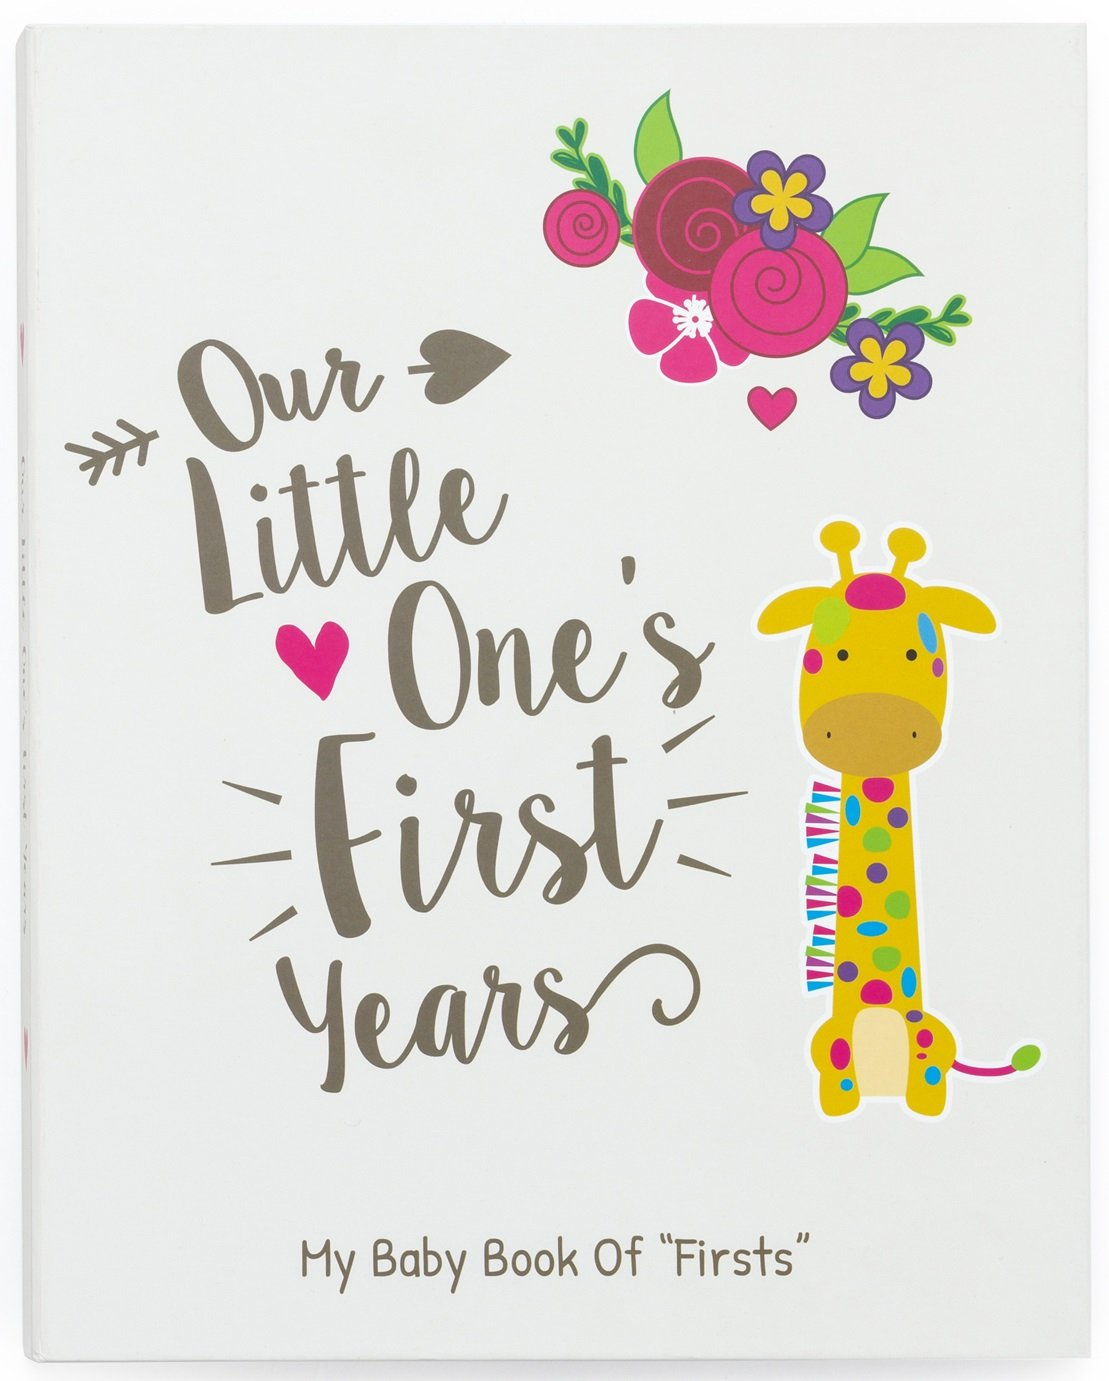 Ronica First Year Baby Memory Book Baby Journal – Modern Baby Shower Gift Keepsake for New Parents to Record Photos milestones – Five Year Scrapbook Picture Album for boy Girl Babies